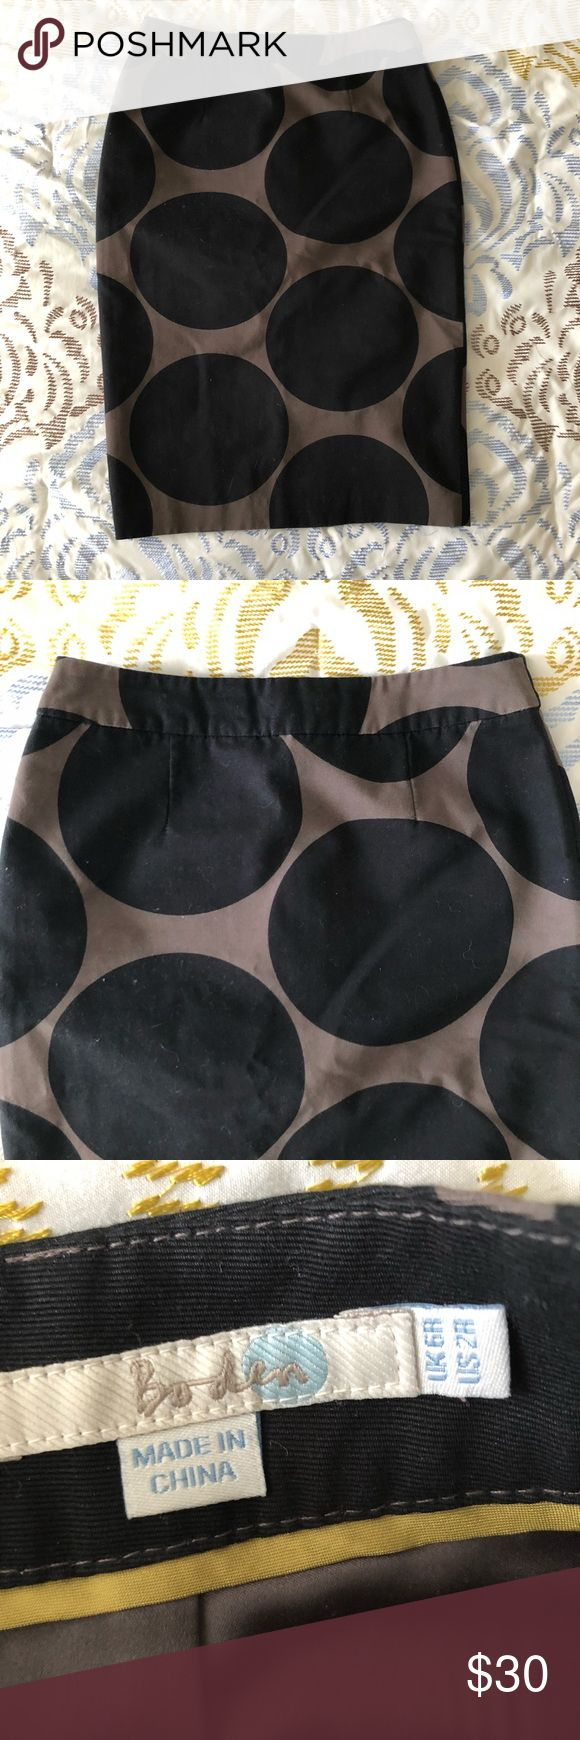 Boden Black Polka Dot Pencil Skirt Size 2 Boden black and brown pencil skirt with polka dots in size 2. Small slit on the bottom hem with zipper in the back. In excellent condition, no flaws. Boden Skirts Pencil